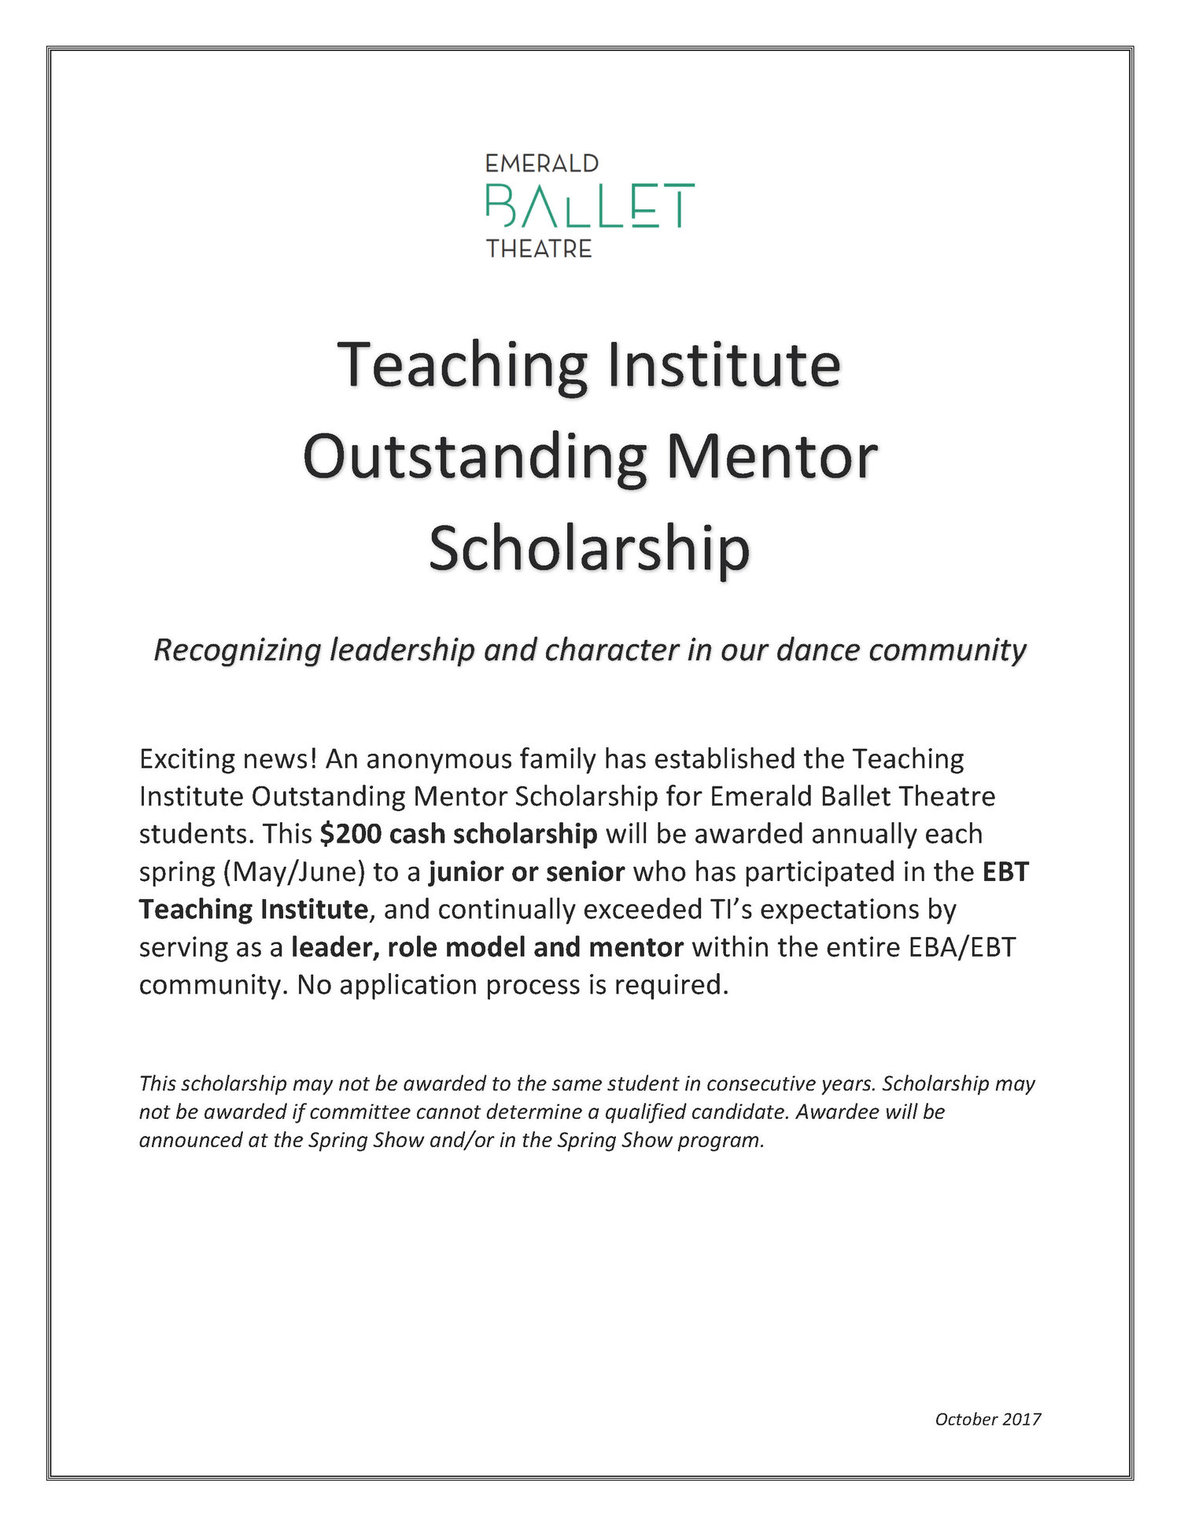 Teaching Institute Outstanding Mentor Scholarship